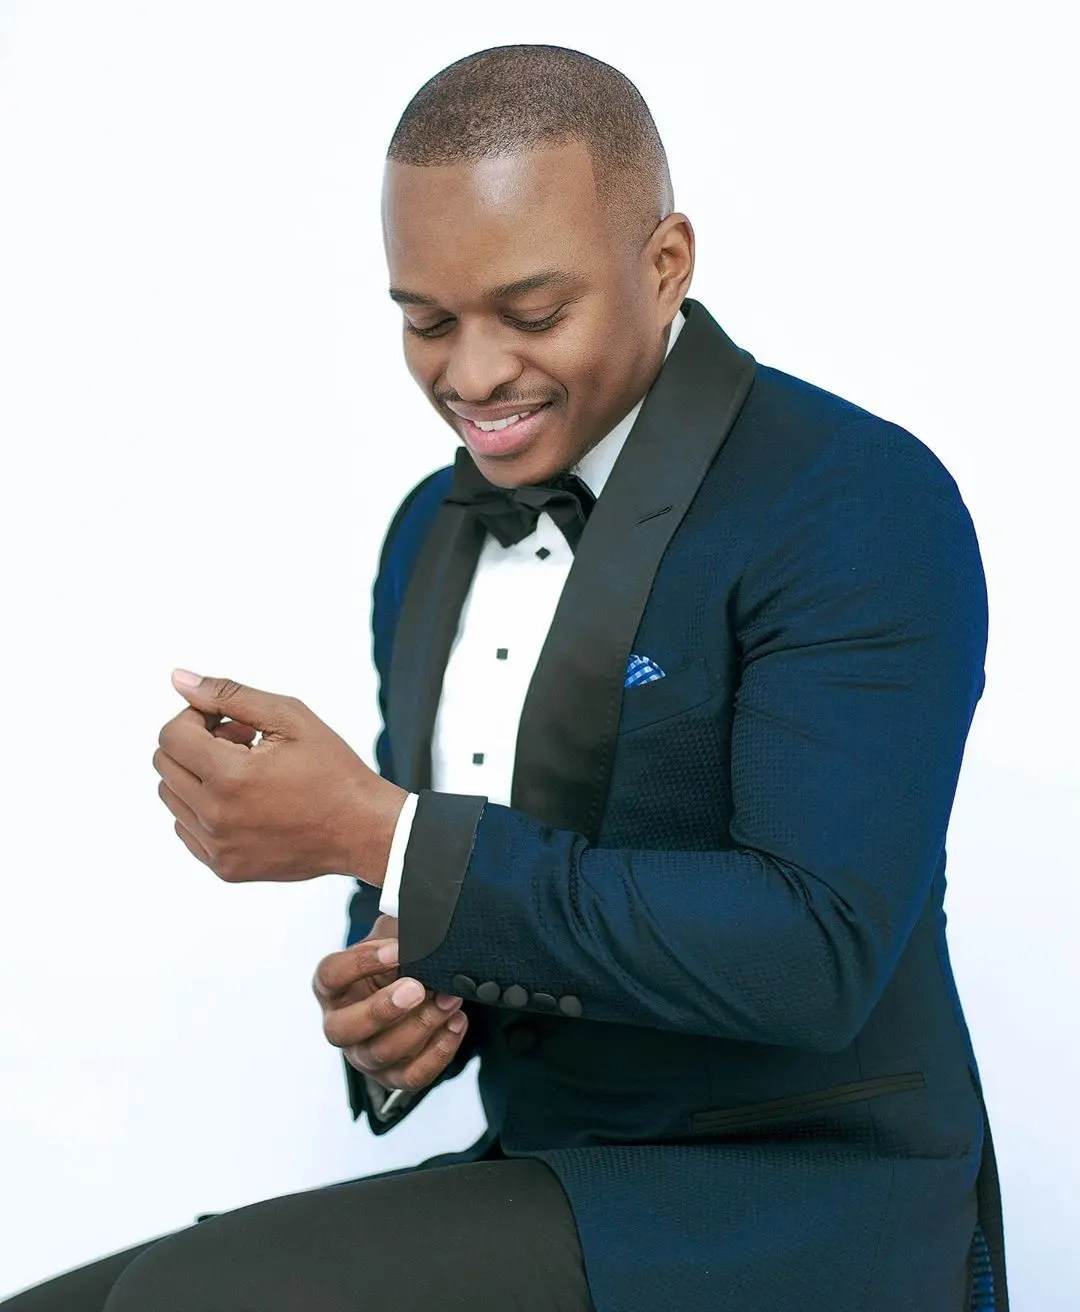 Metro FMs DJ Naked Hints Hes Married a Second Wife